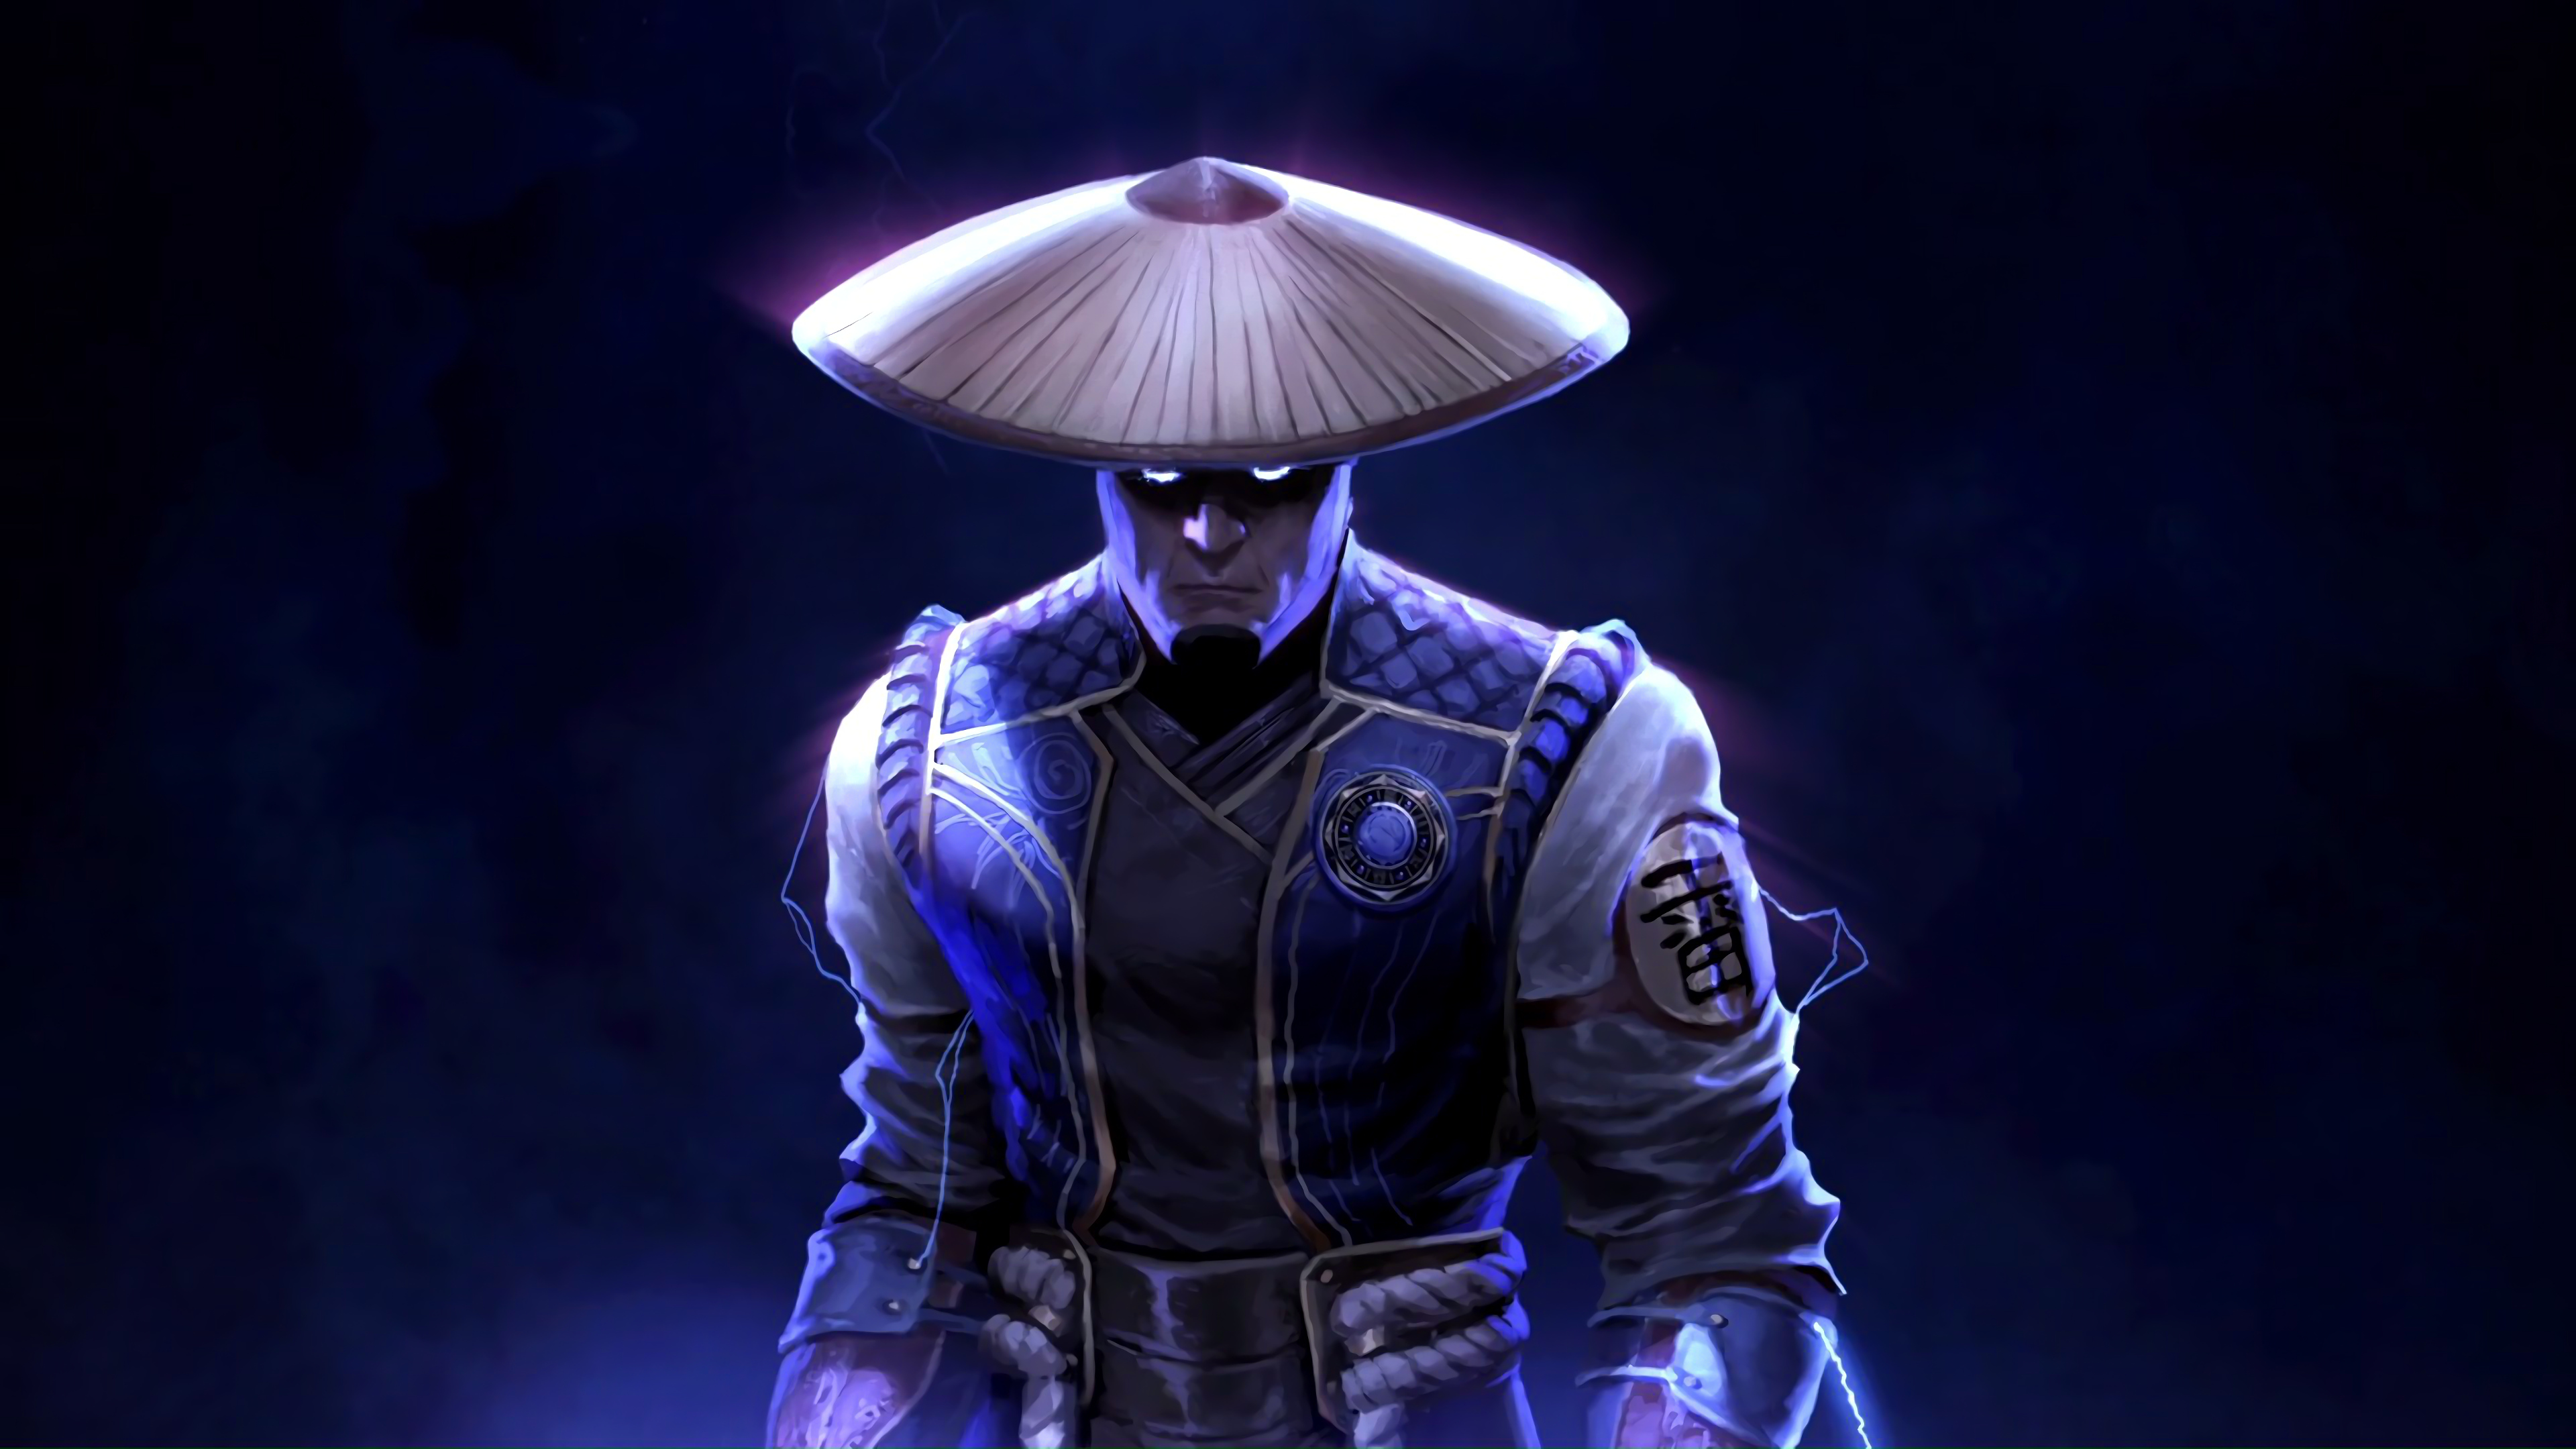 4k resolution mortal kombat 11 raiden wallpaper